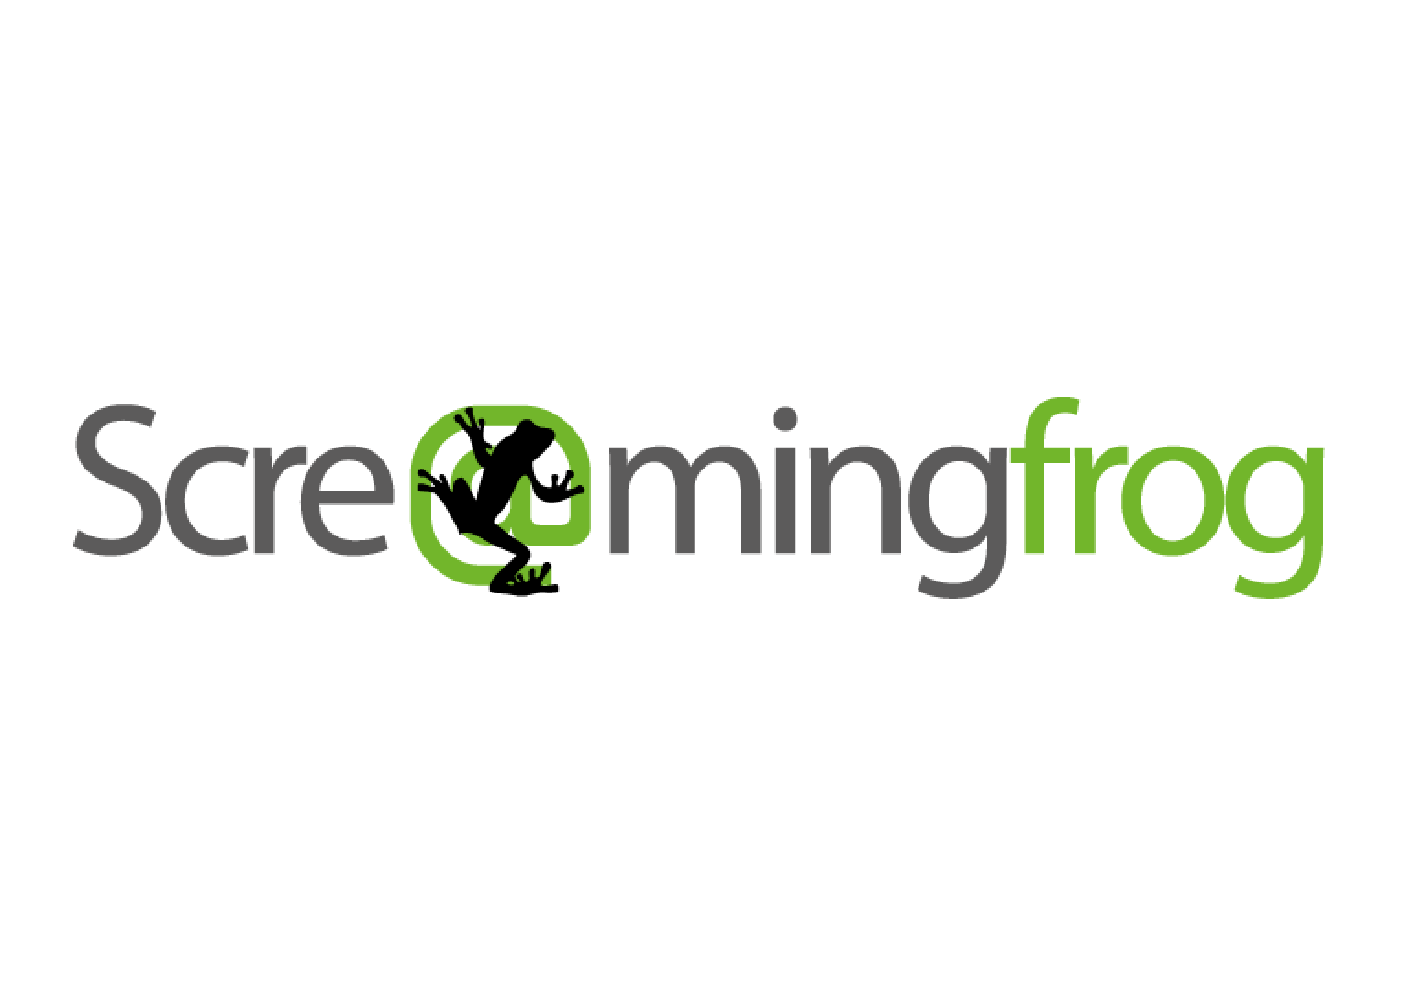 ScreamingFrog-e1497643557912